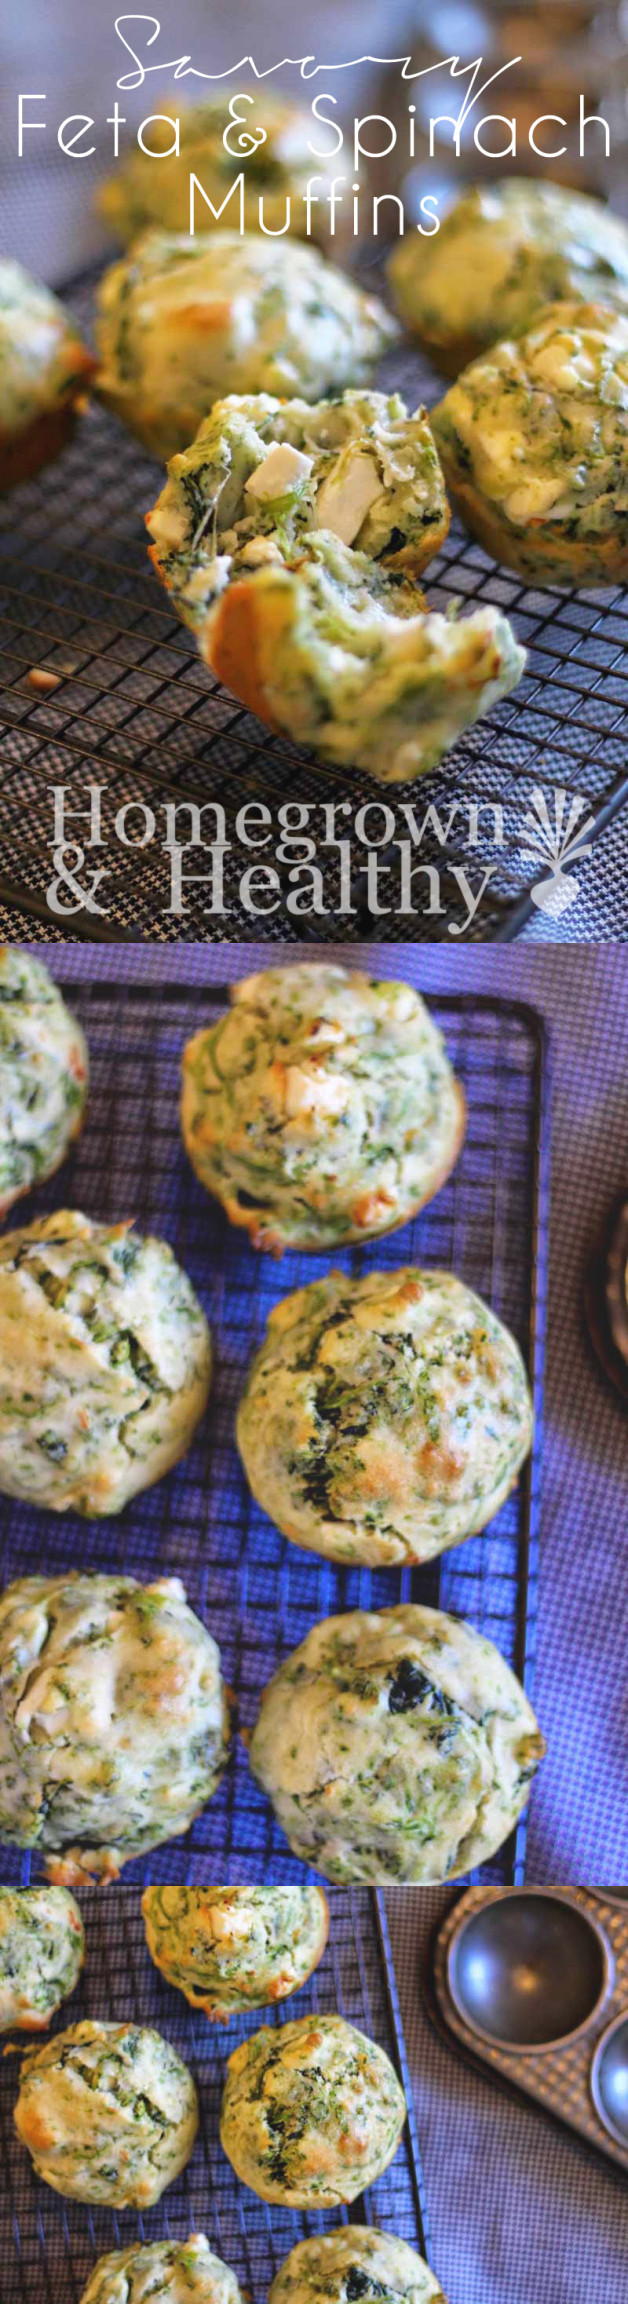 Feta and spinach muffins - Homegrown in the Valley